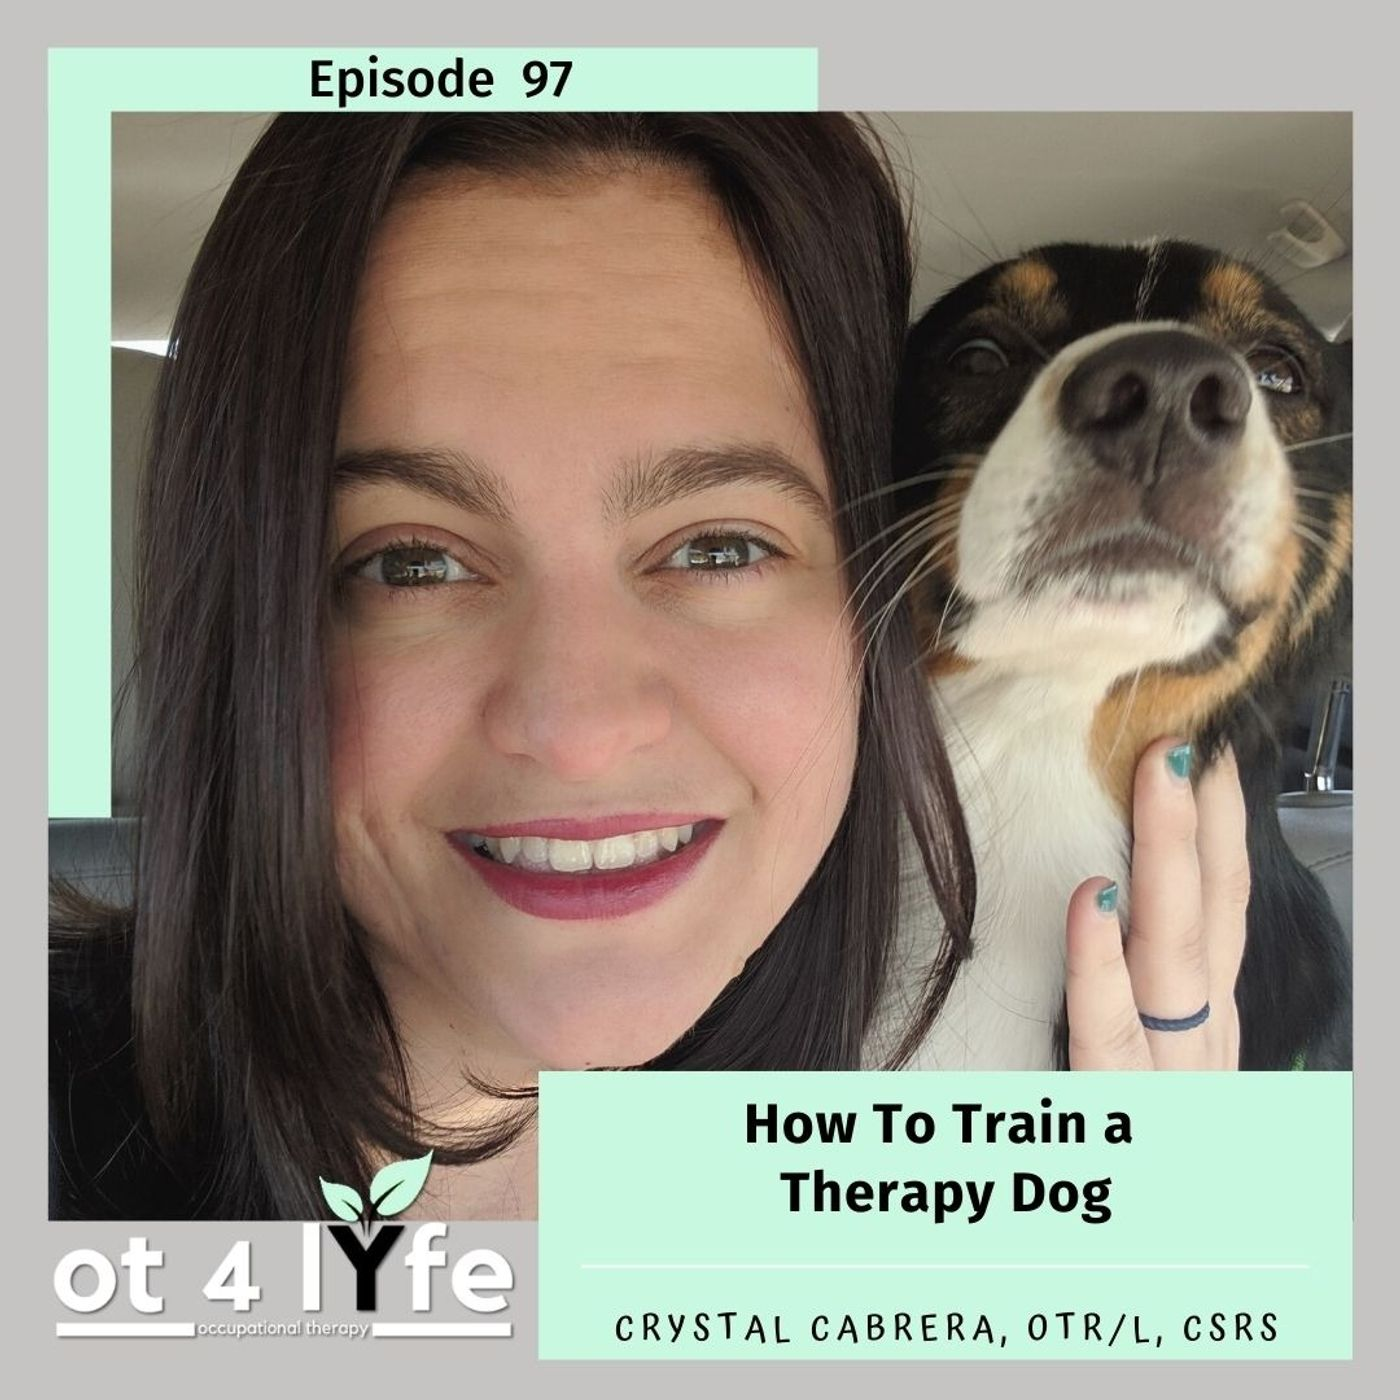 How To Train a Therapy Dog with Crystal Cabrera